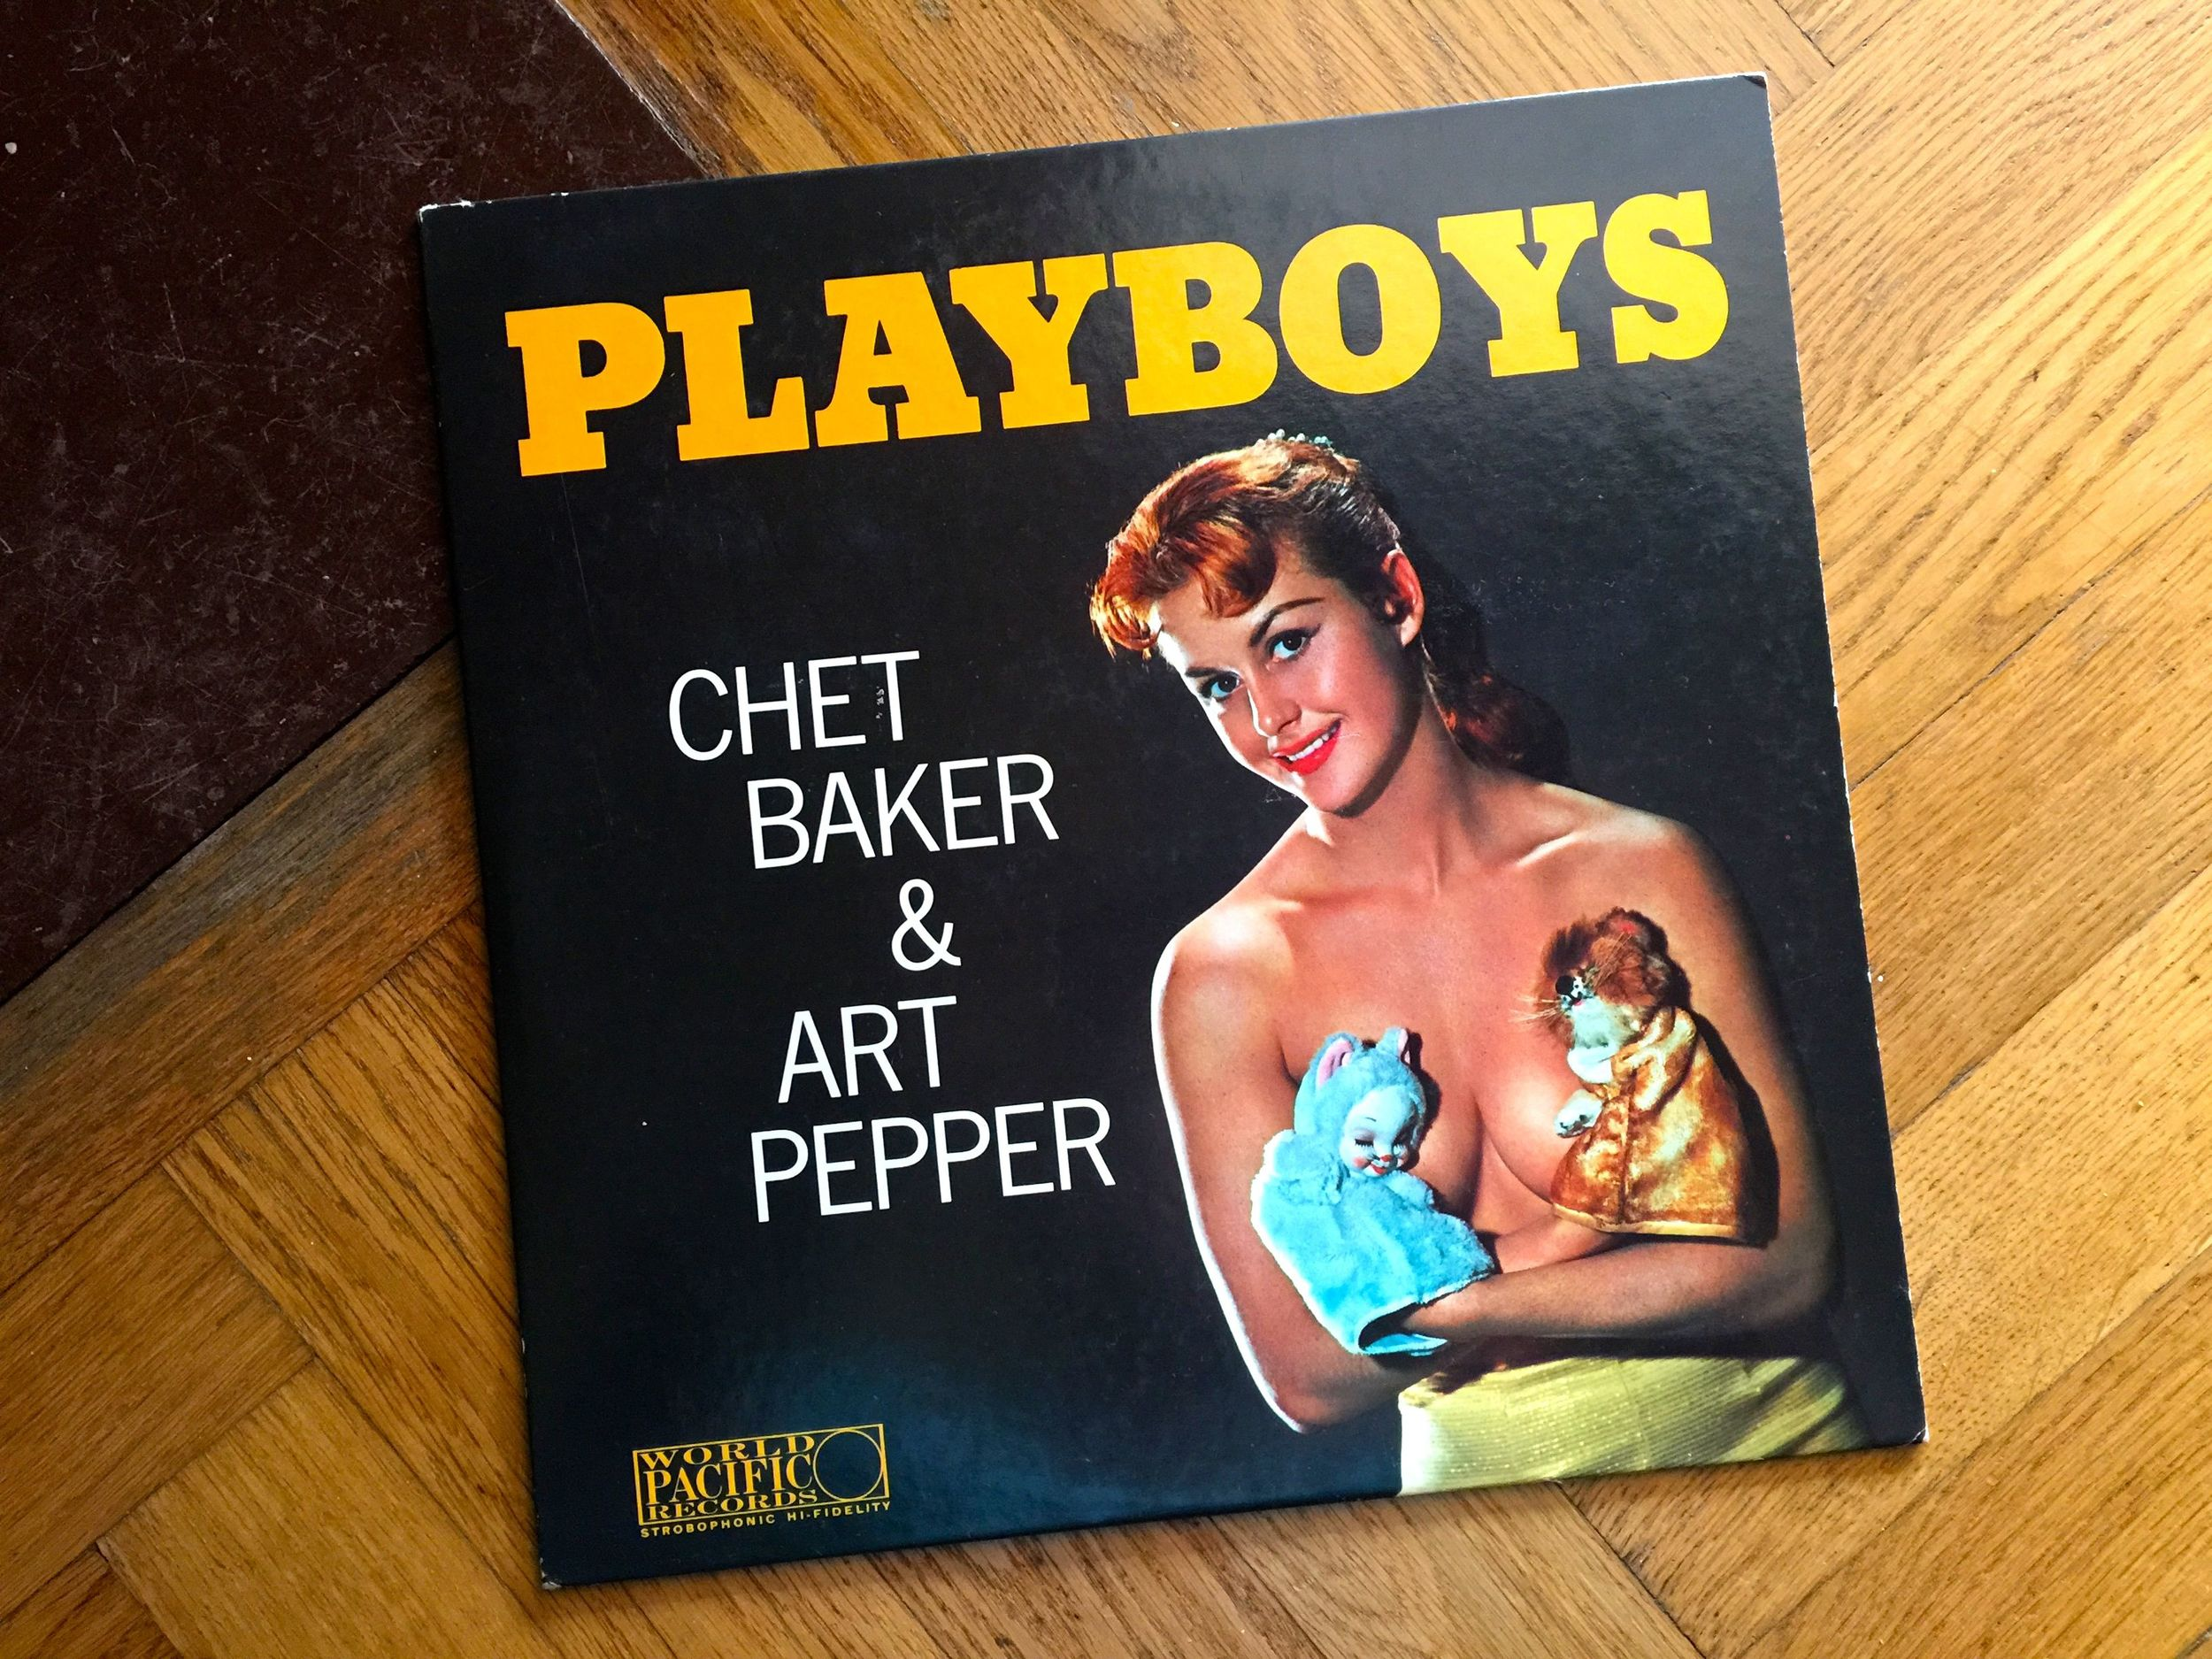 """Playboys"" indeed..."